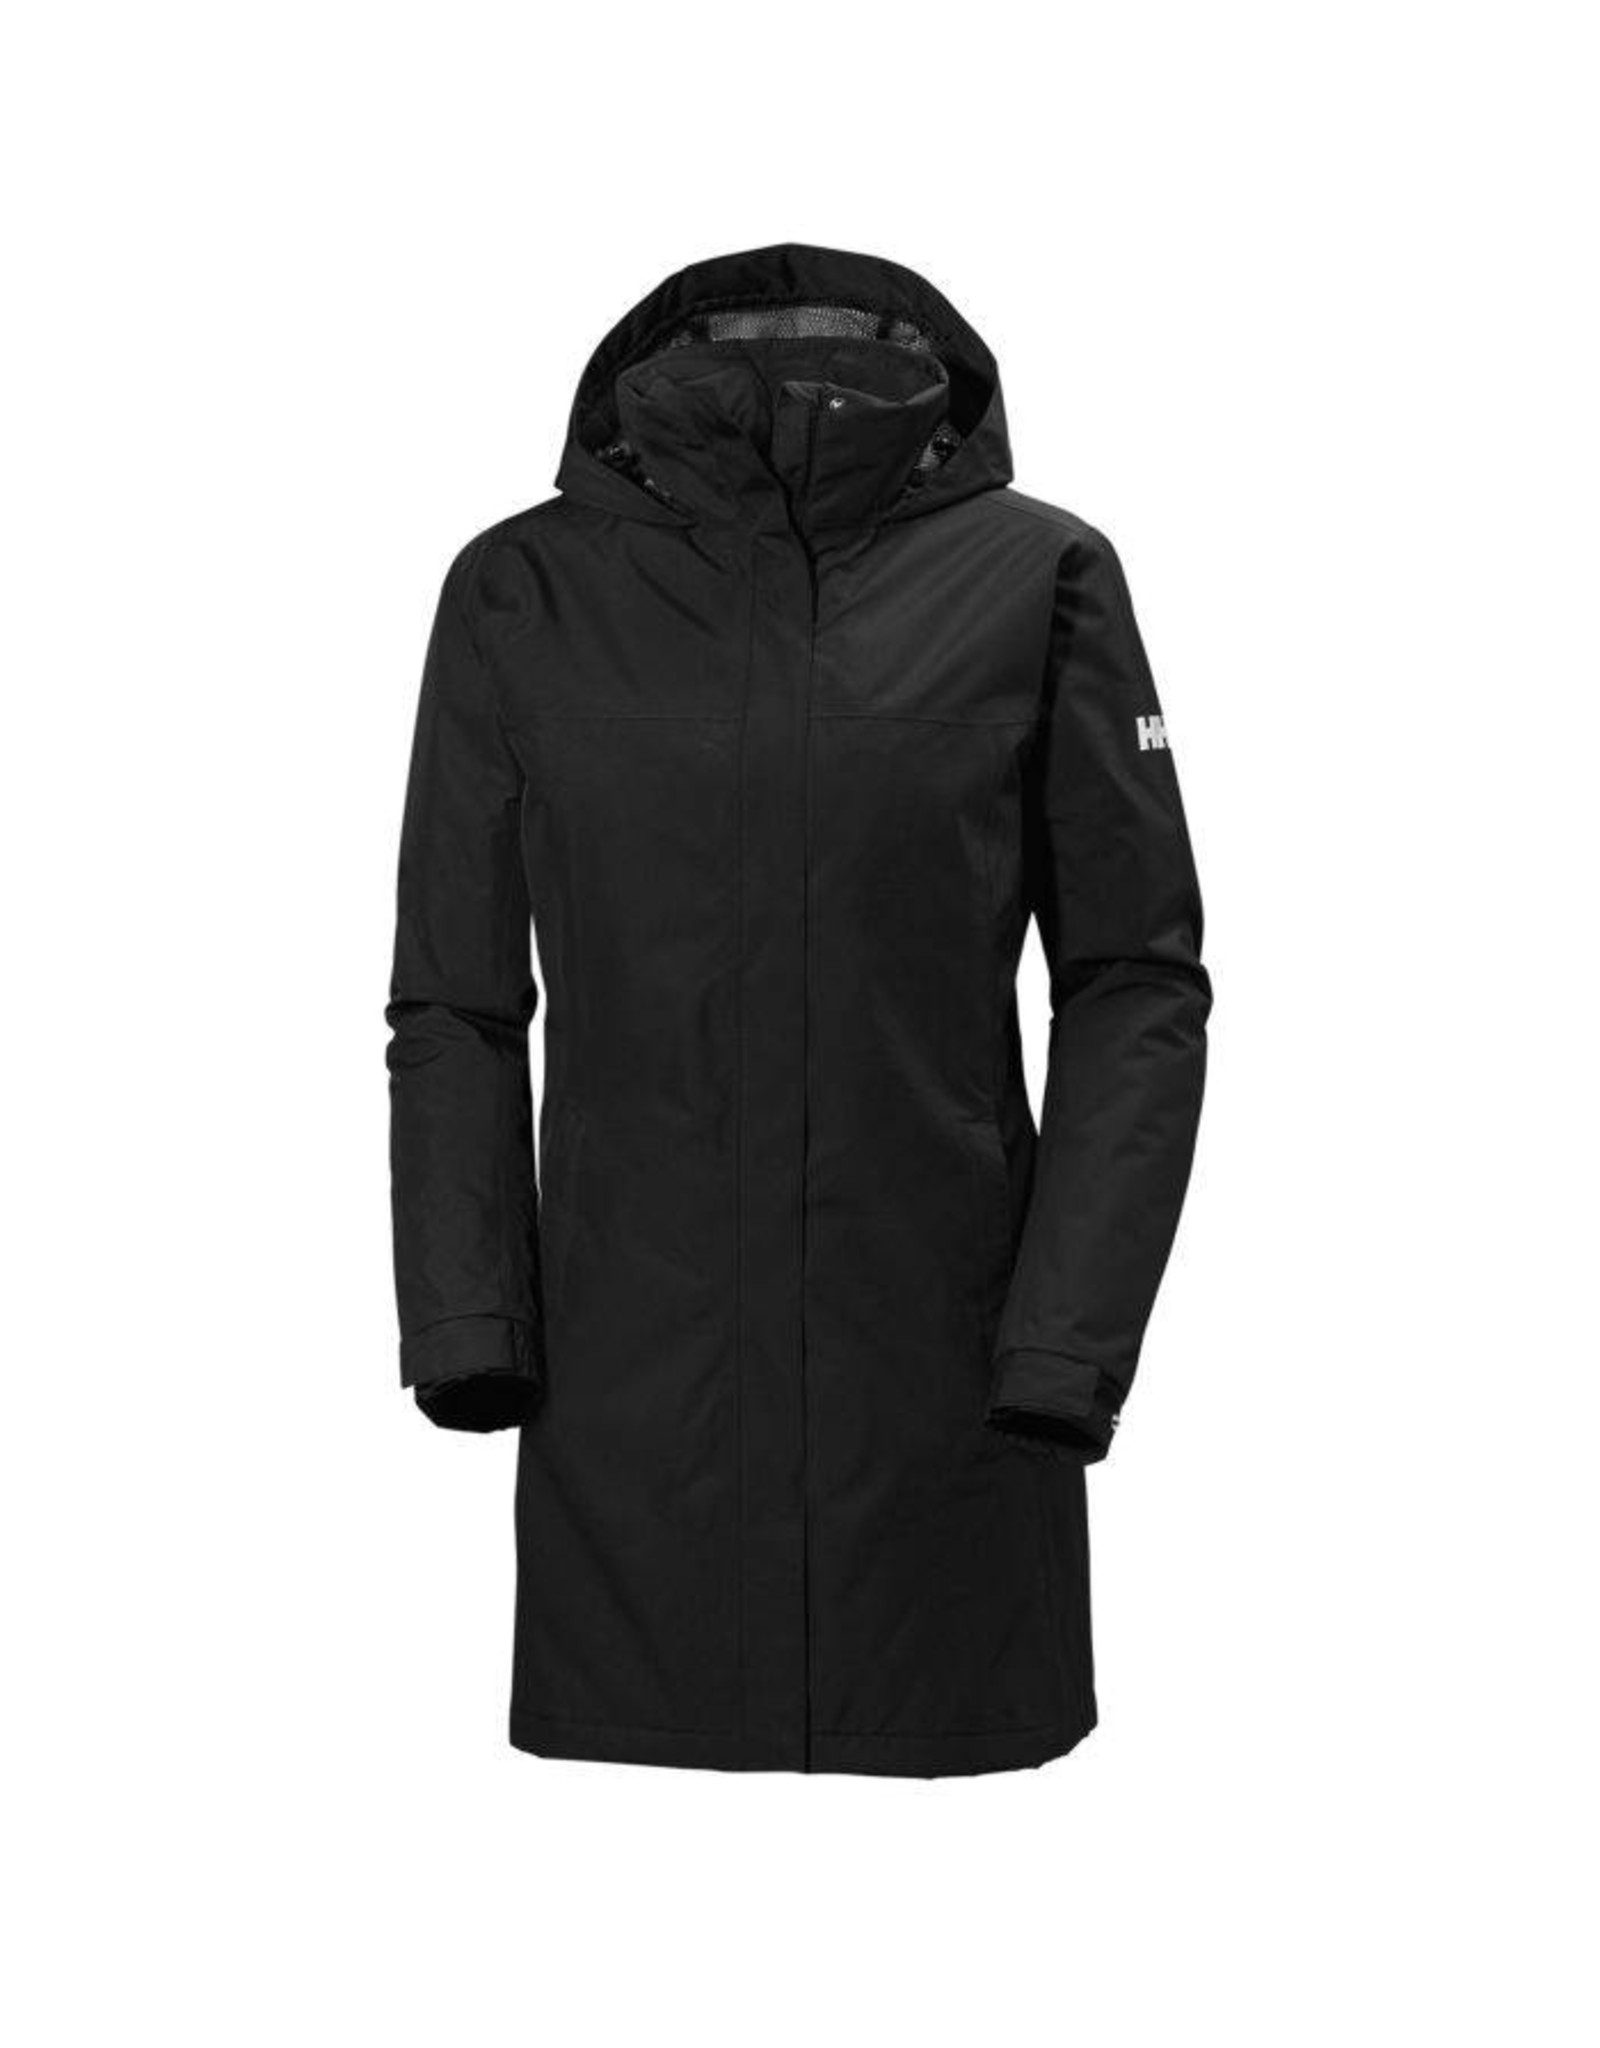 Helly Hansen Women's Aden Insulated Coat - FA18